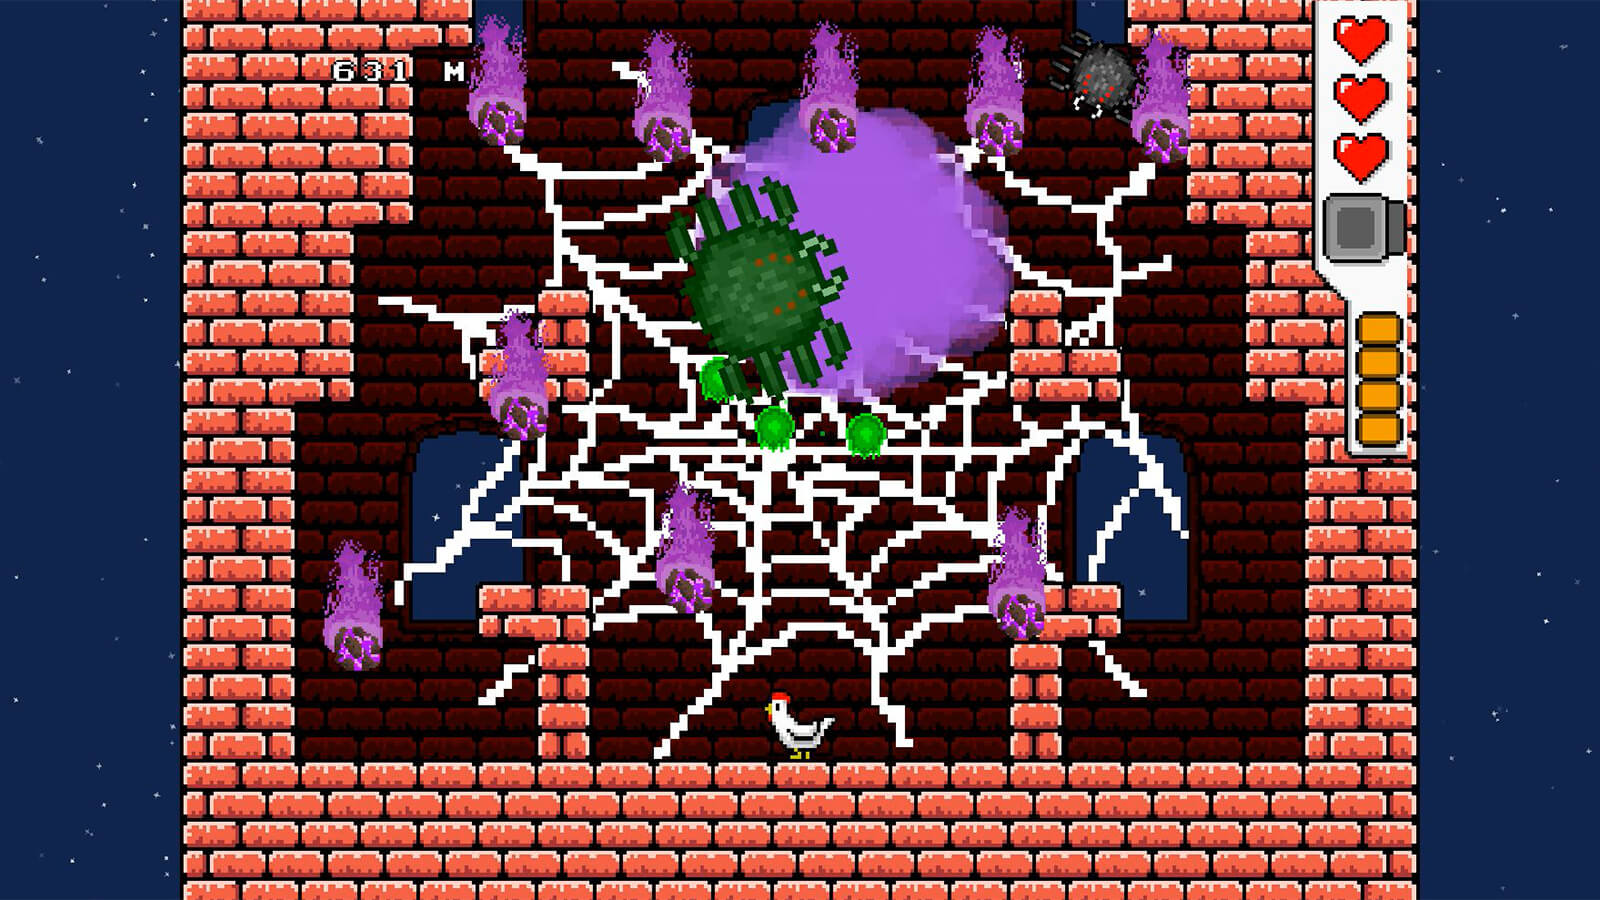 A chicken stands at the bottom of a tower as a giant green spider shoots fireballs and meteors.